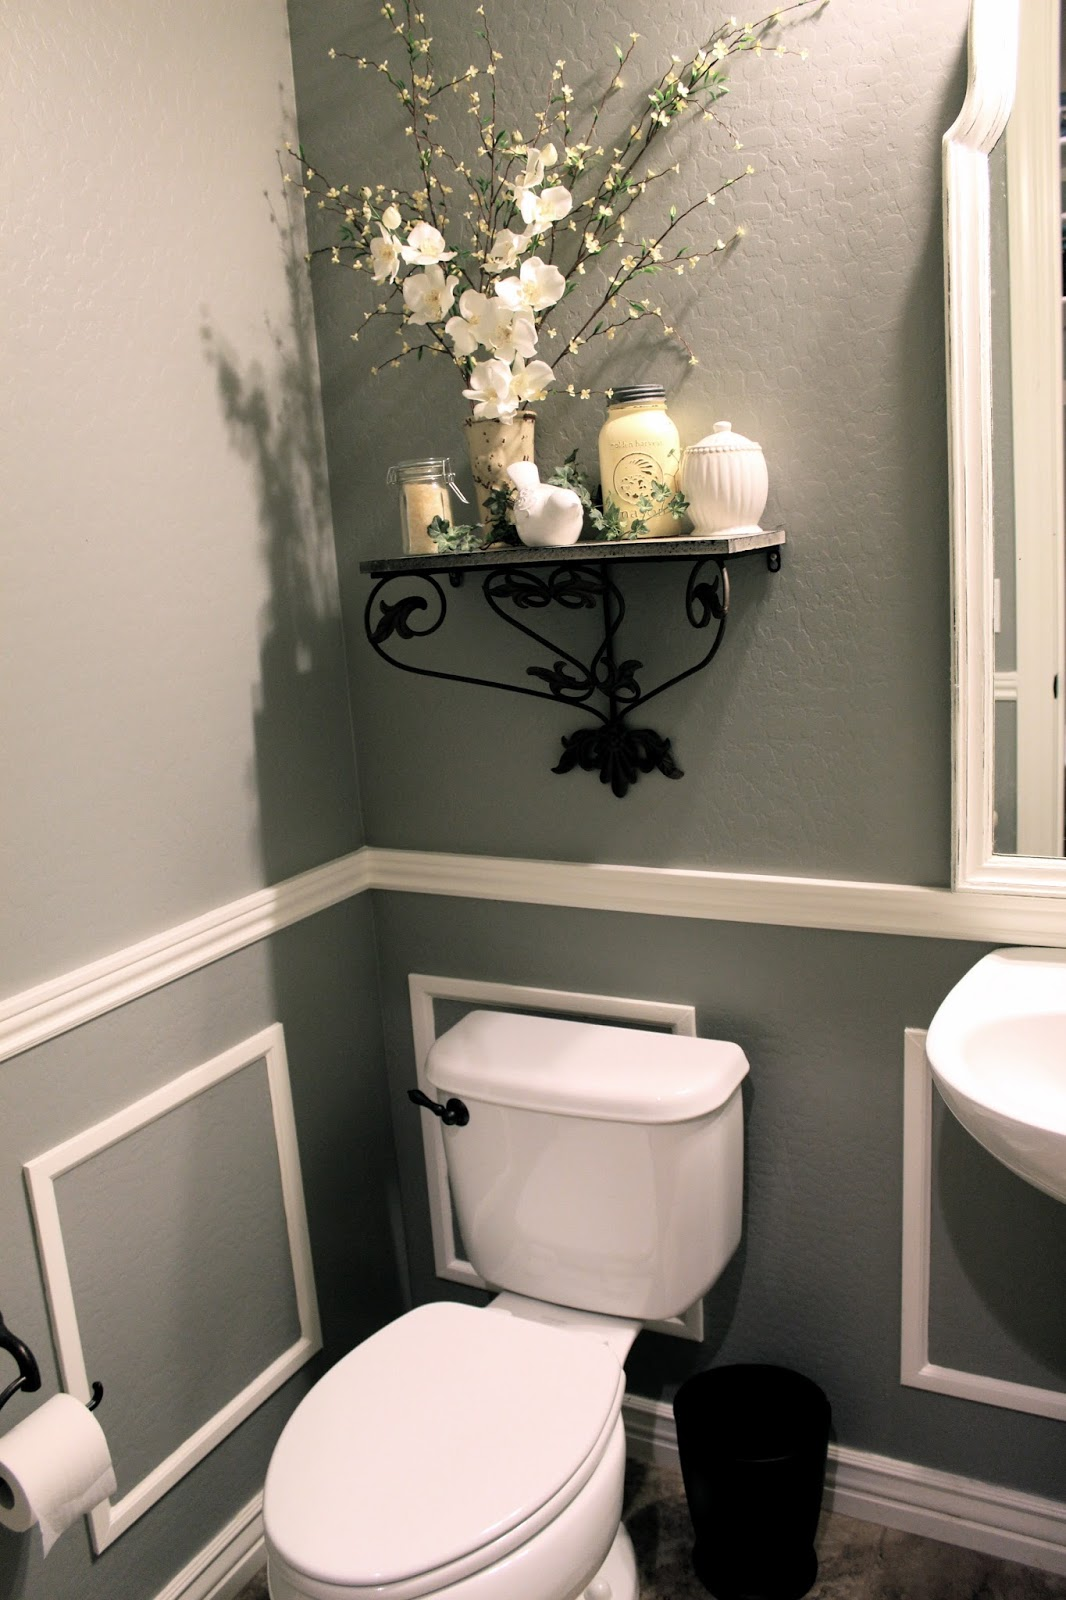 Little bit of paint thrifty thursday bathroom reveal for Bathroom decorating ideas images